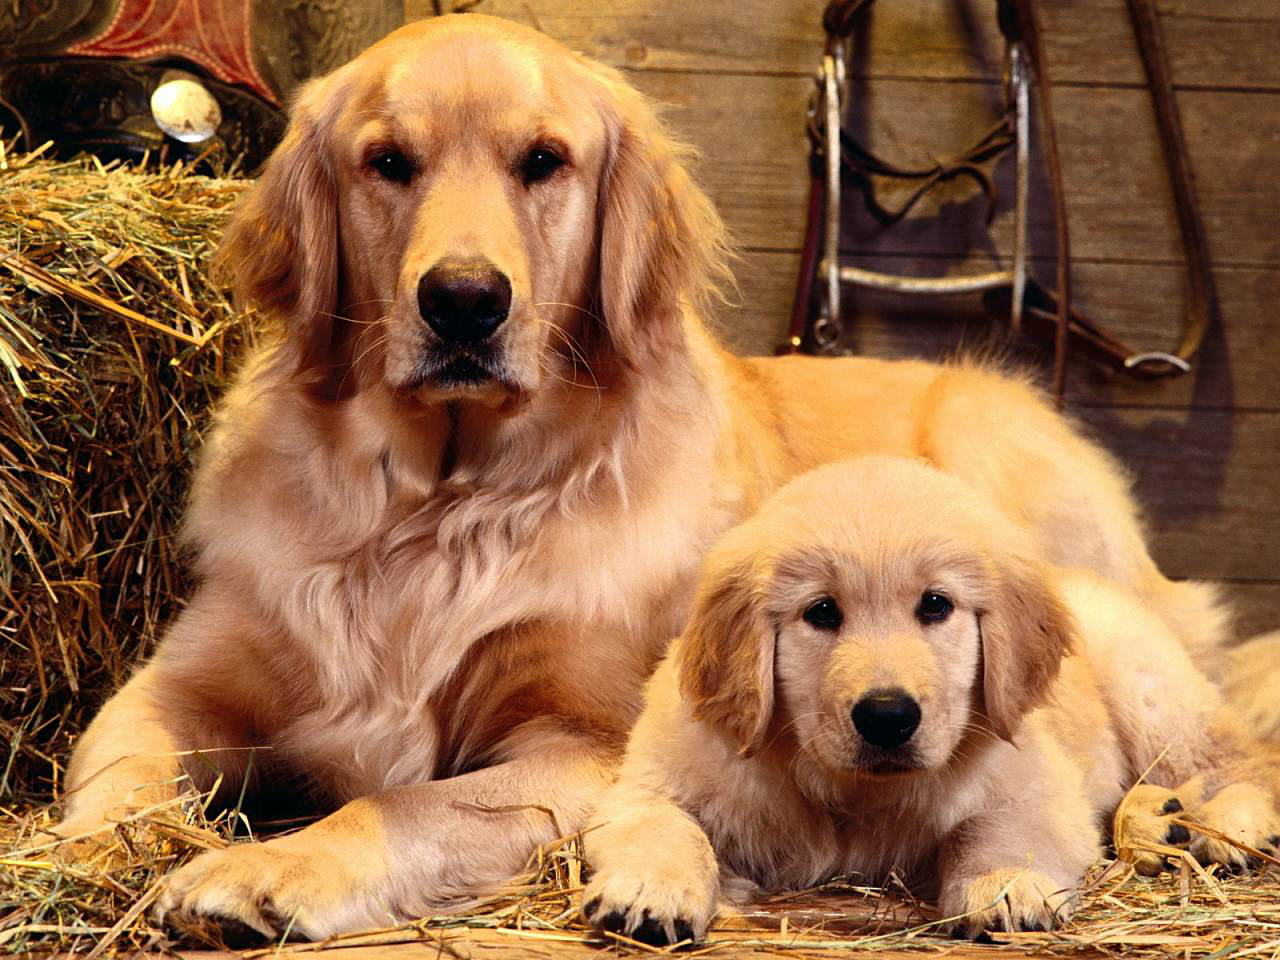 free_wallpaper_of_a_mother_dog_and_her_baby.jpg